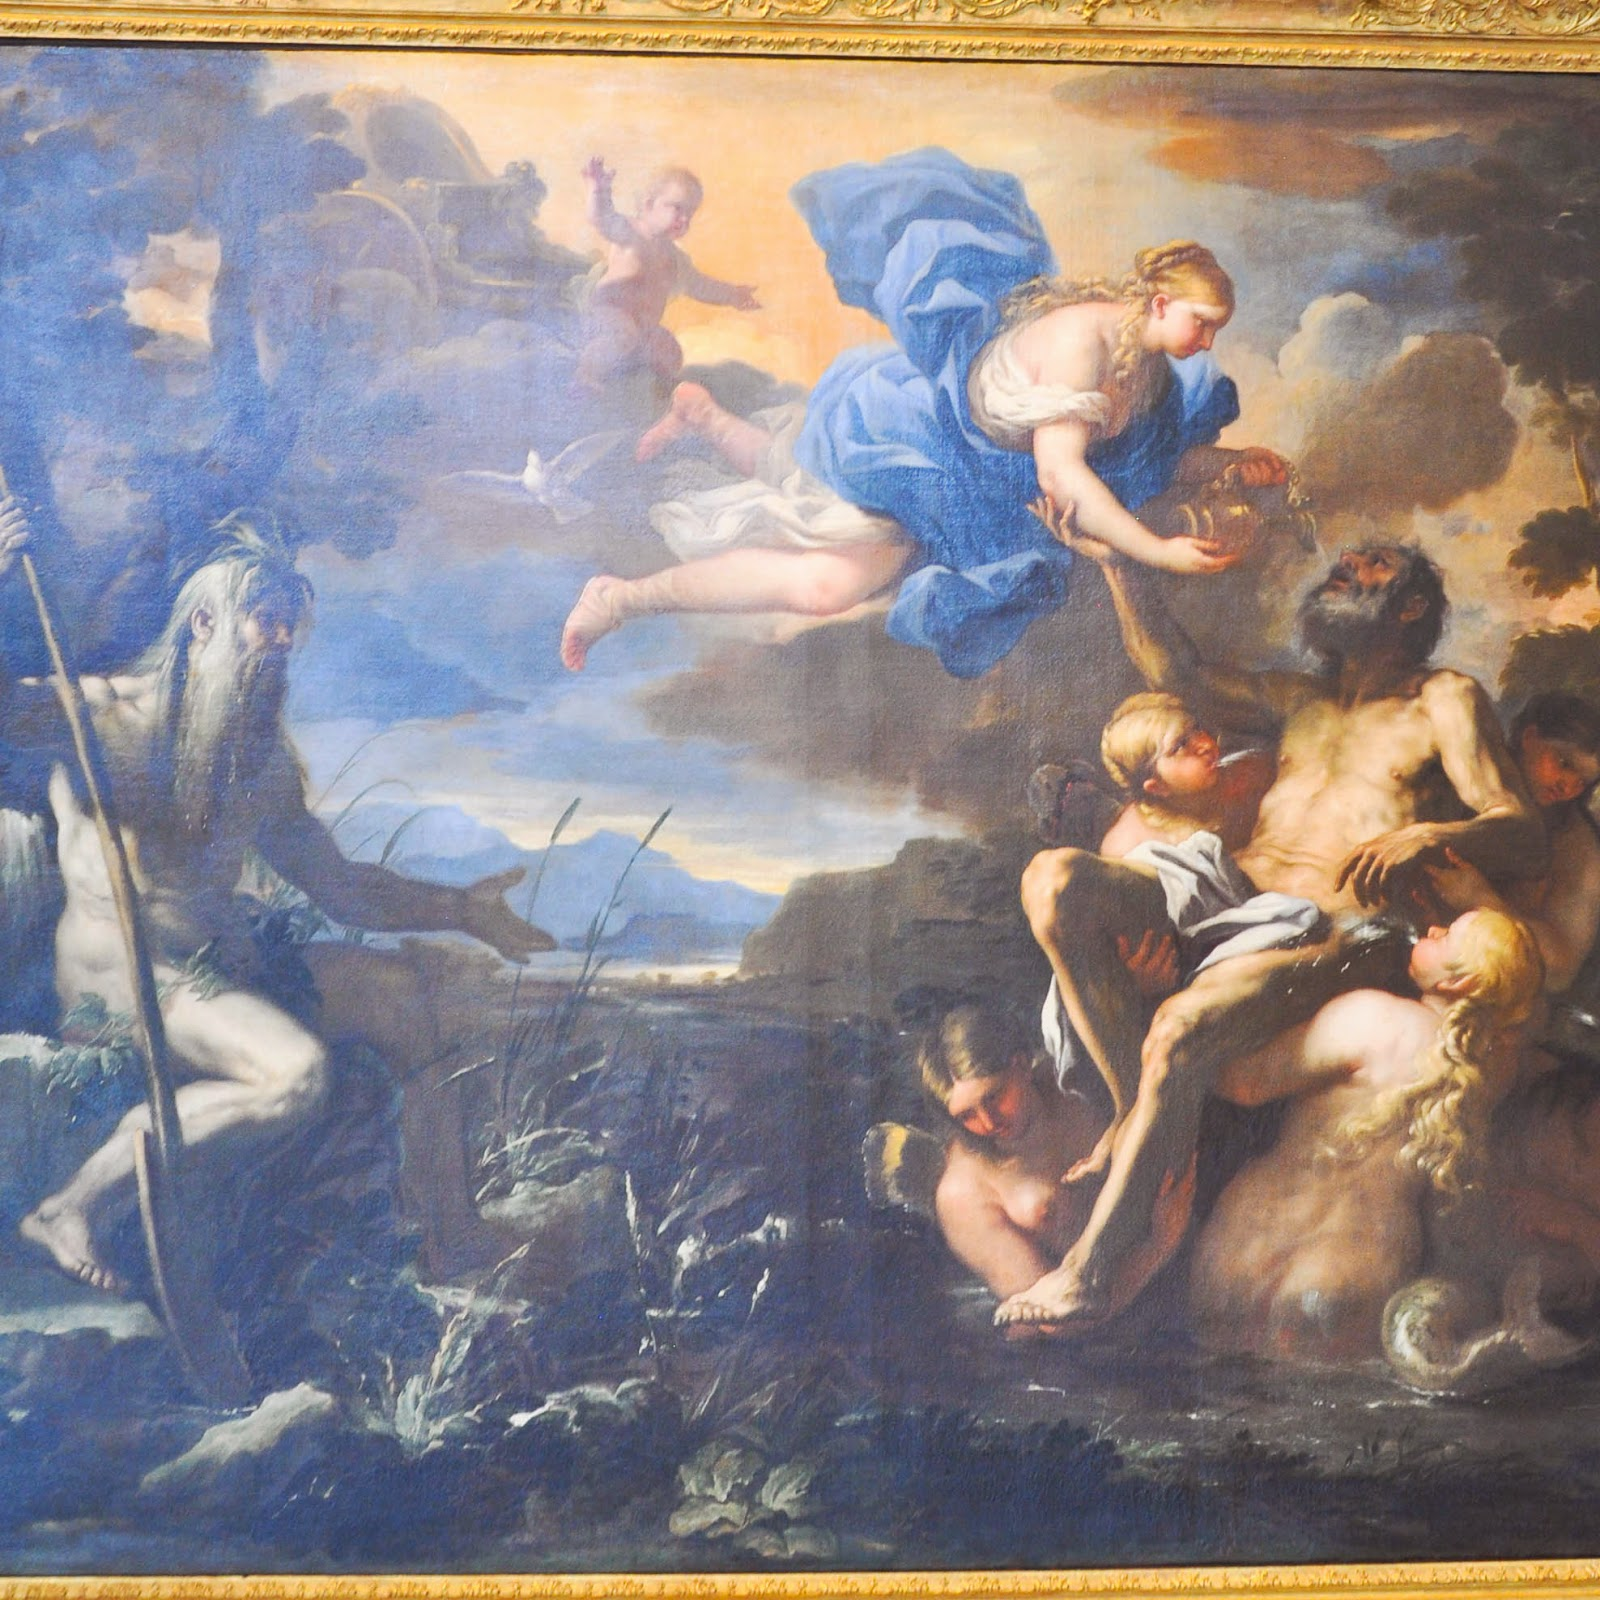 Aeneas Made Immortal by Venus painting Luca Giordano Civic Art Gallery Palazzo Chiericati Vicenza Italy